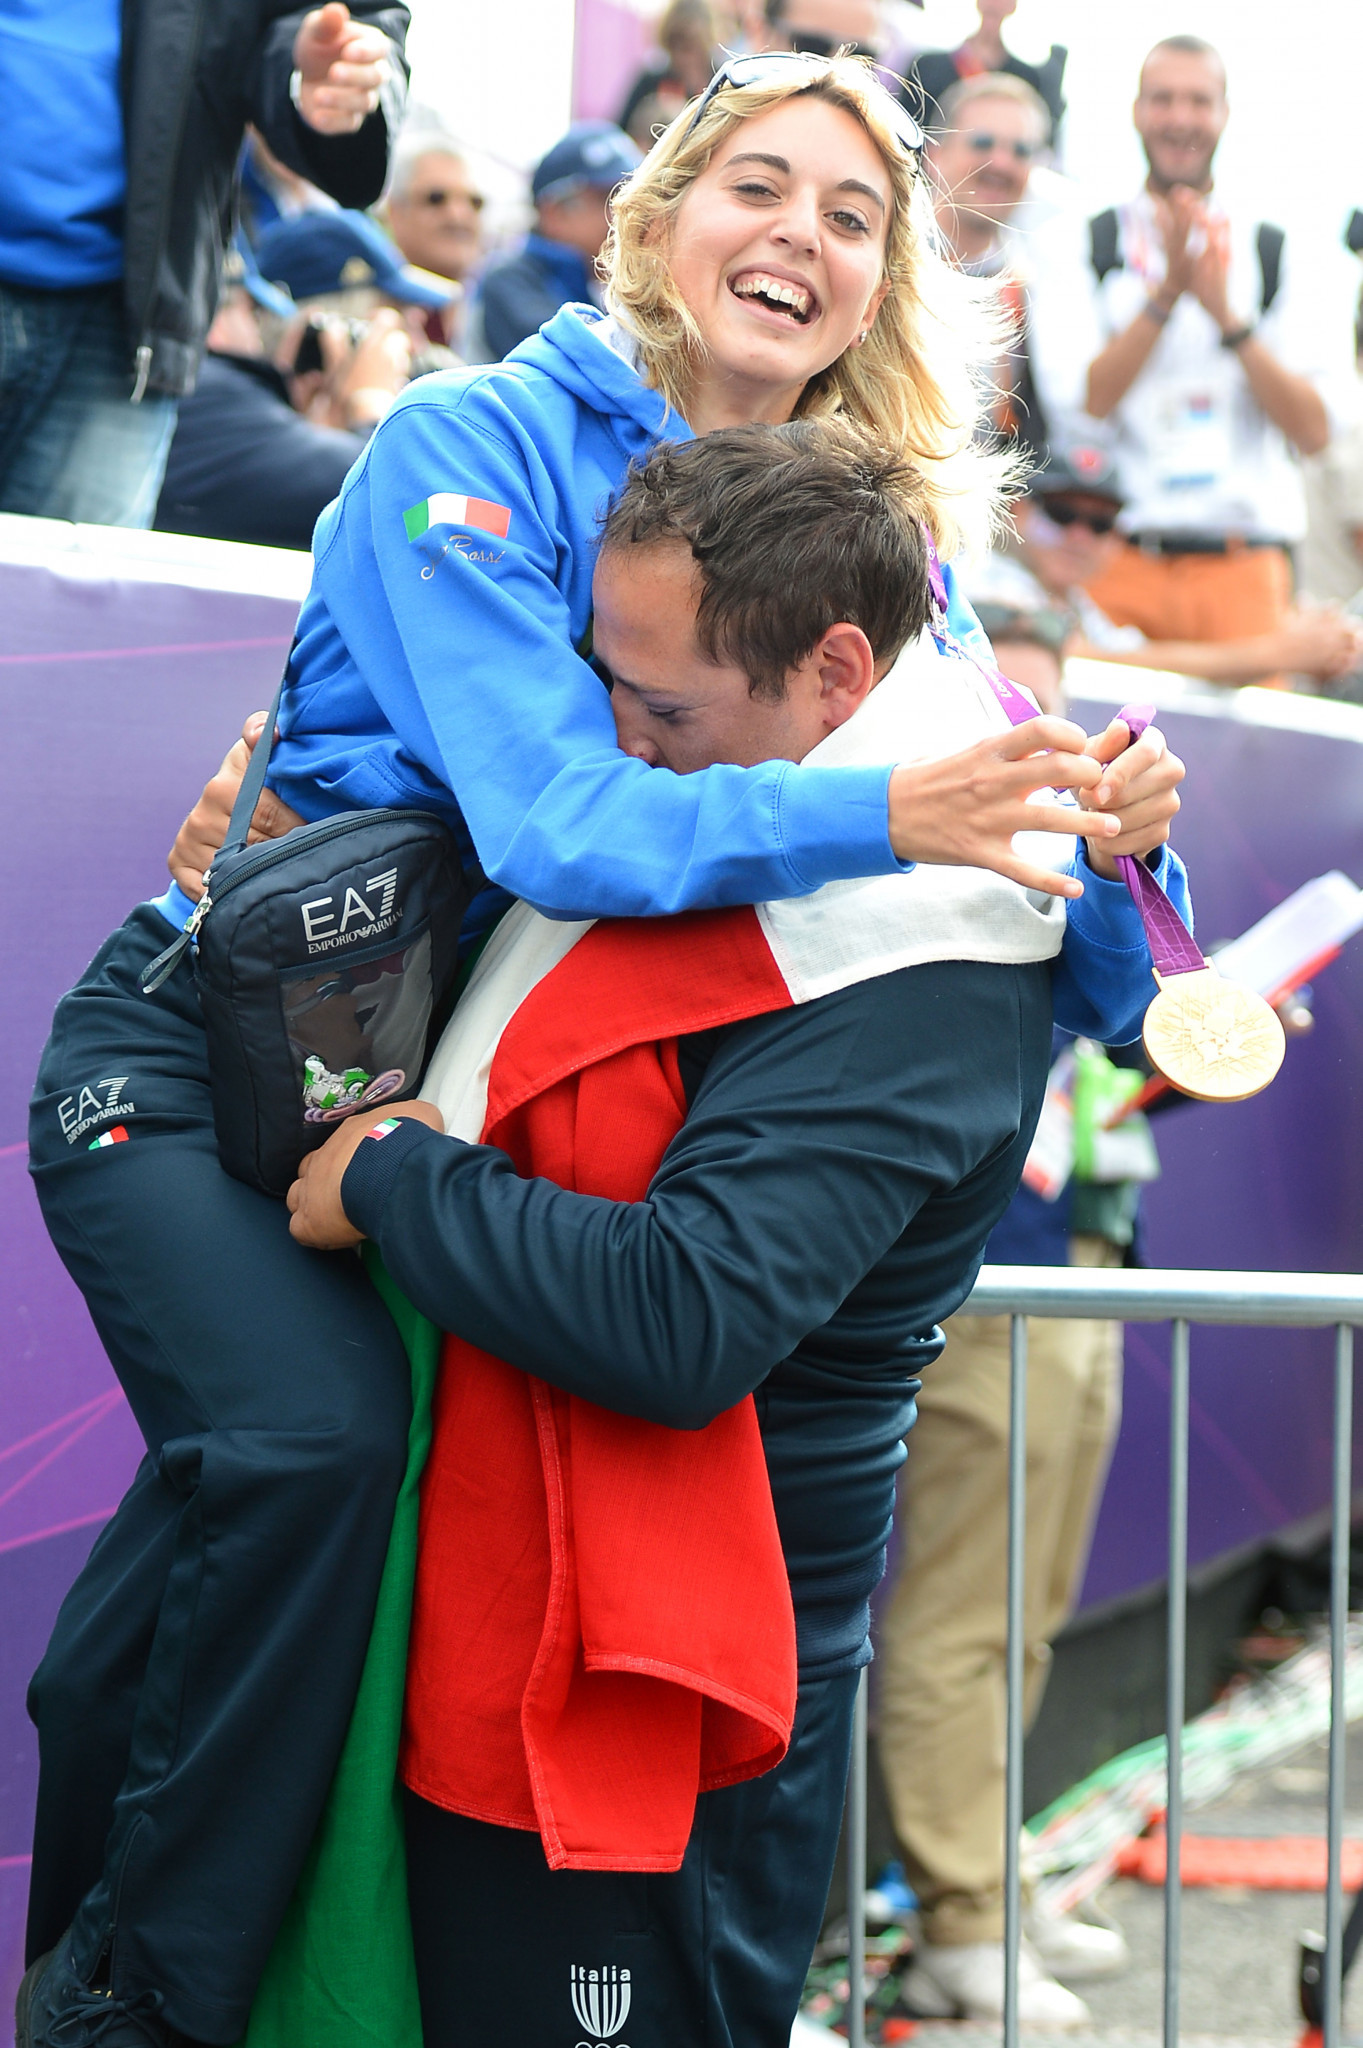 Italy's Jessica Rossi, pictured celebrating victory at London 2012, is well placed ahead of tomorrow's women's trap final in the ISSF Shotgun World Cup in the United Arab Emirates ©Getty Images